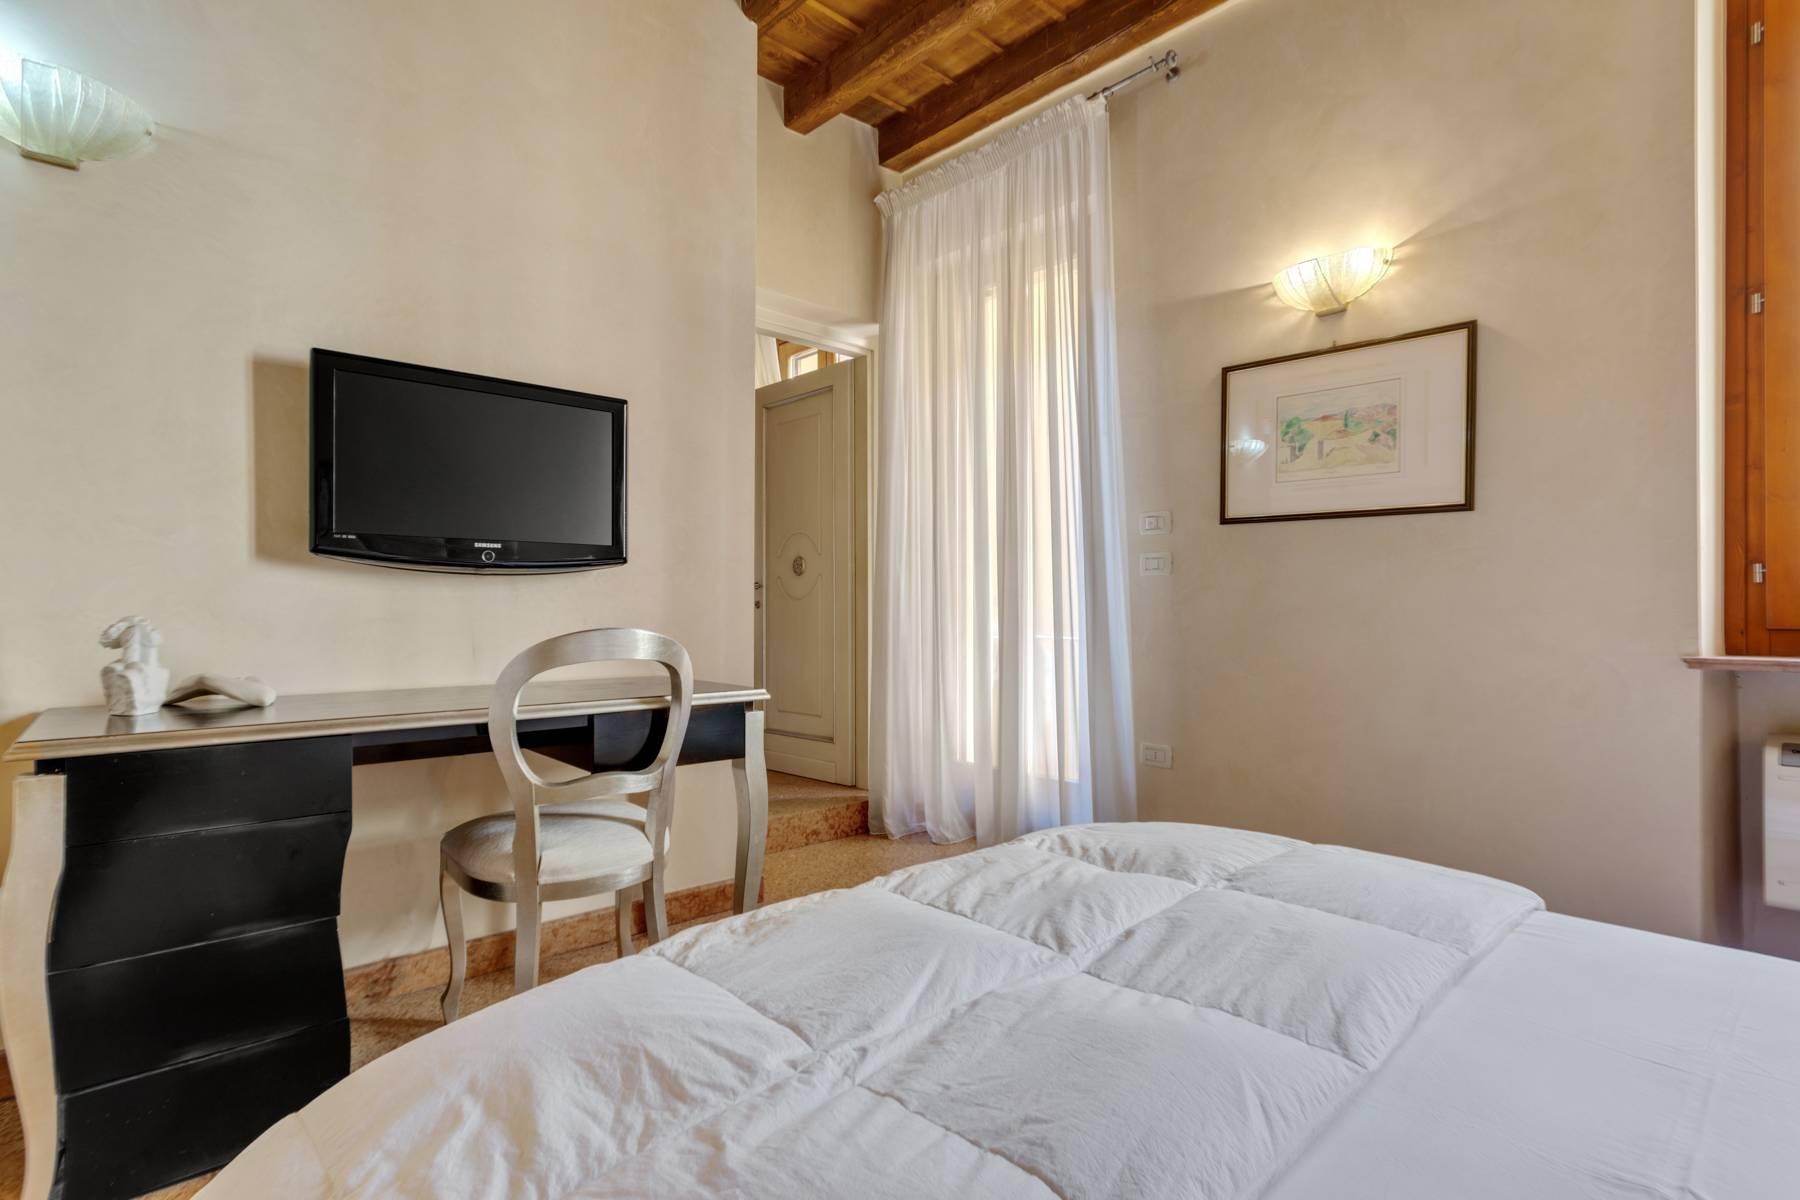 Exquisite apartment just few steps away from Piazza delle Erbe - 13